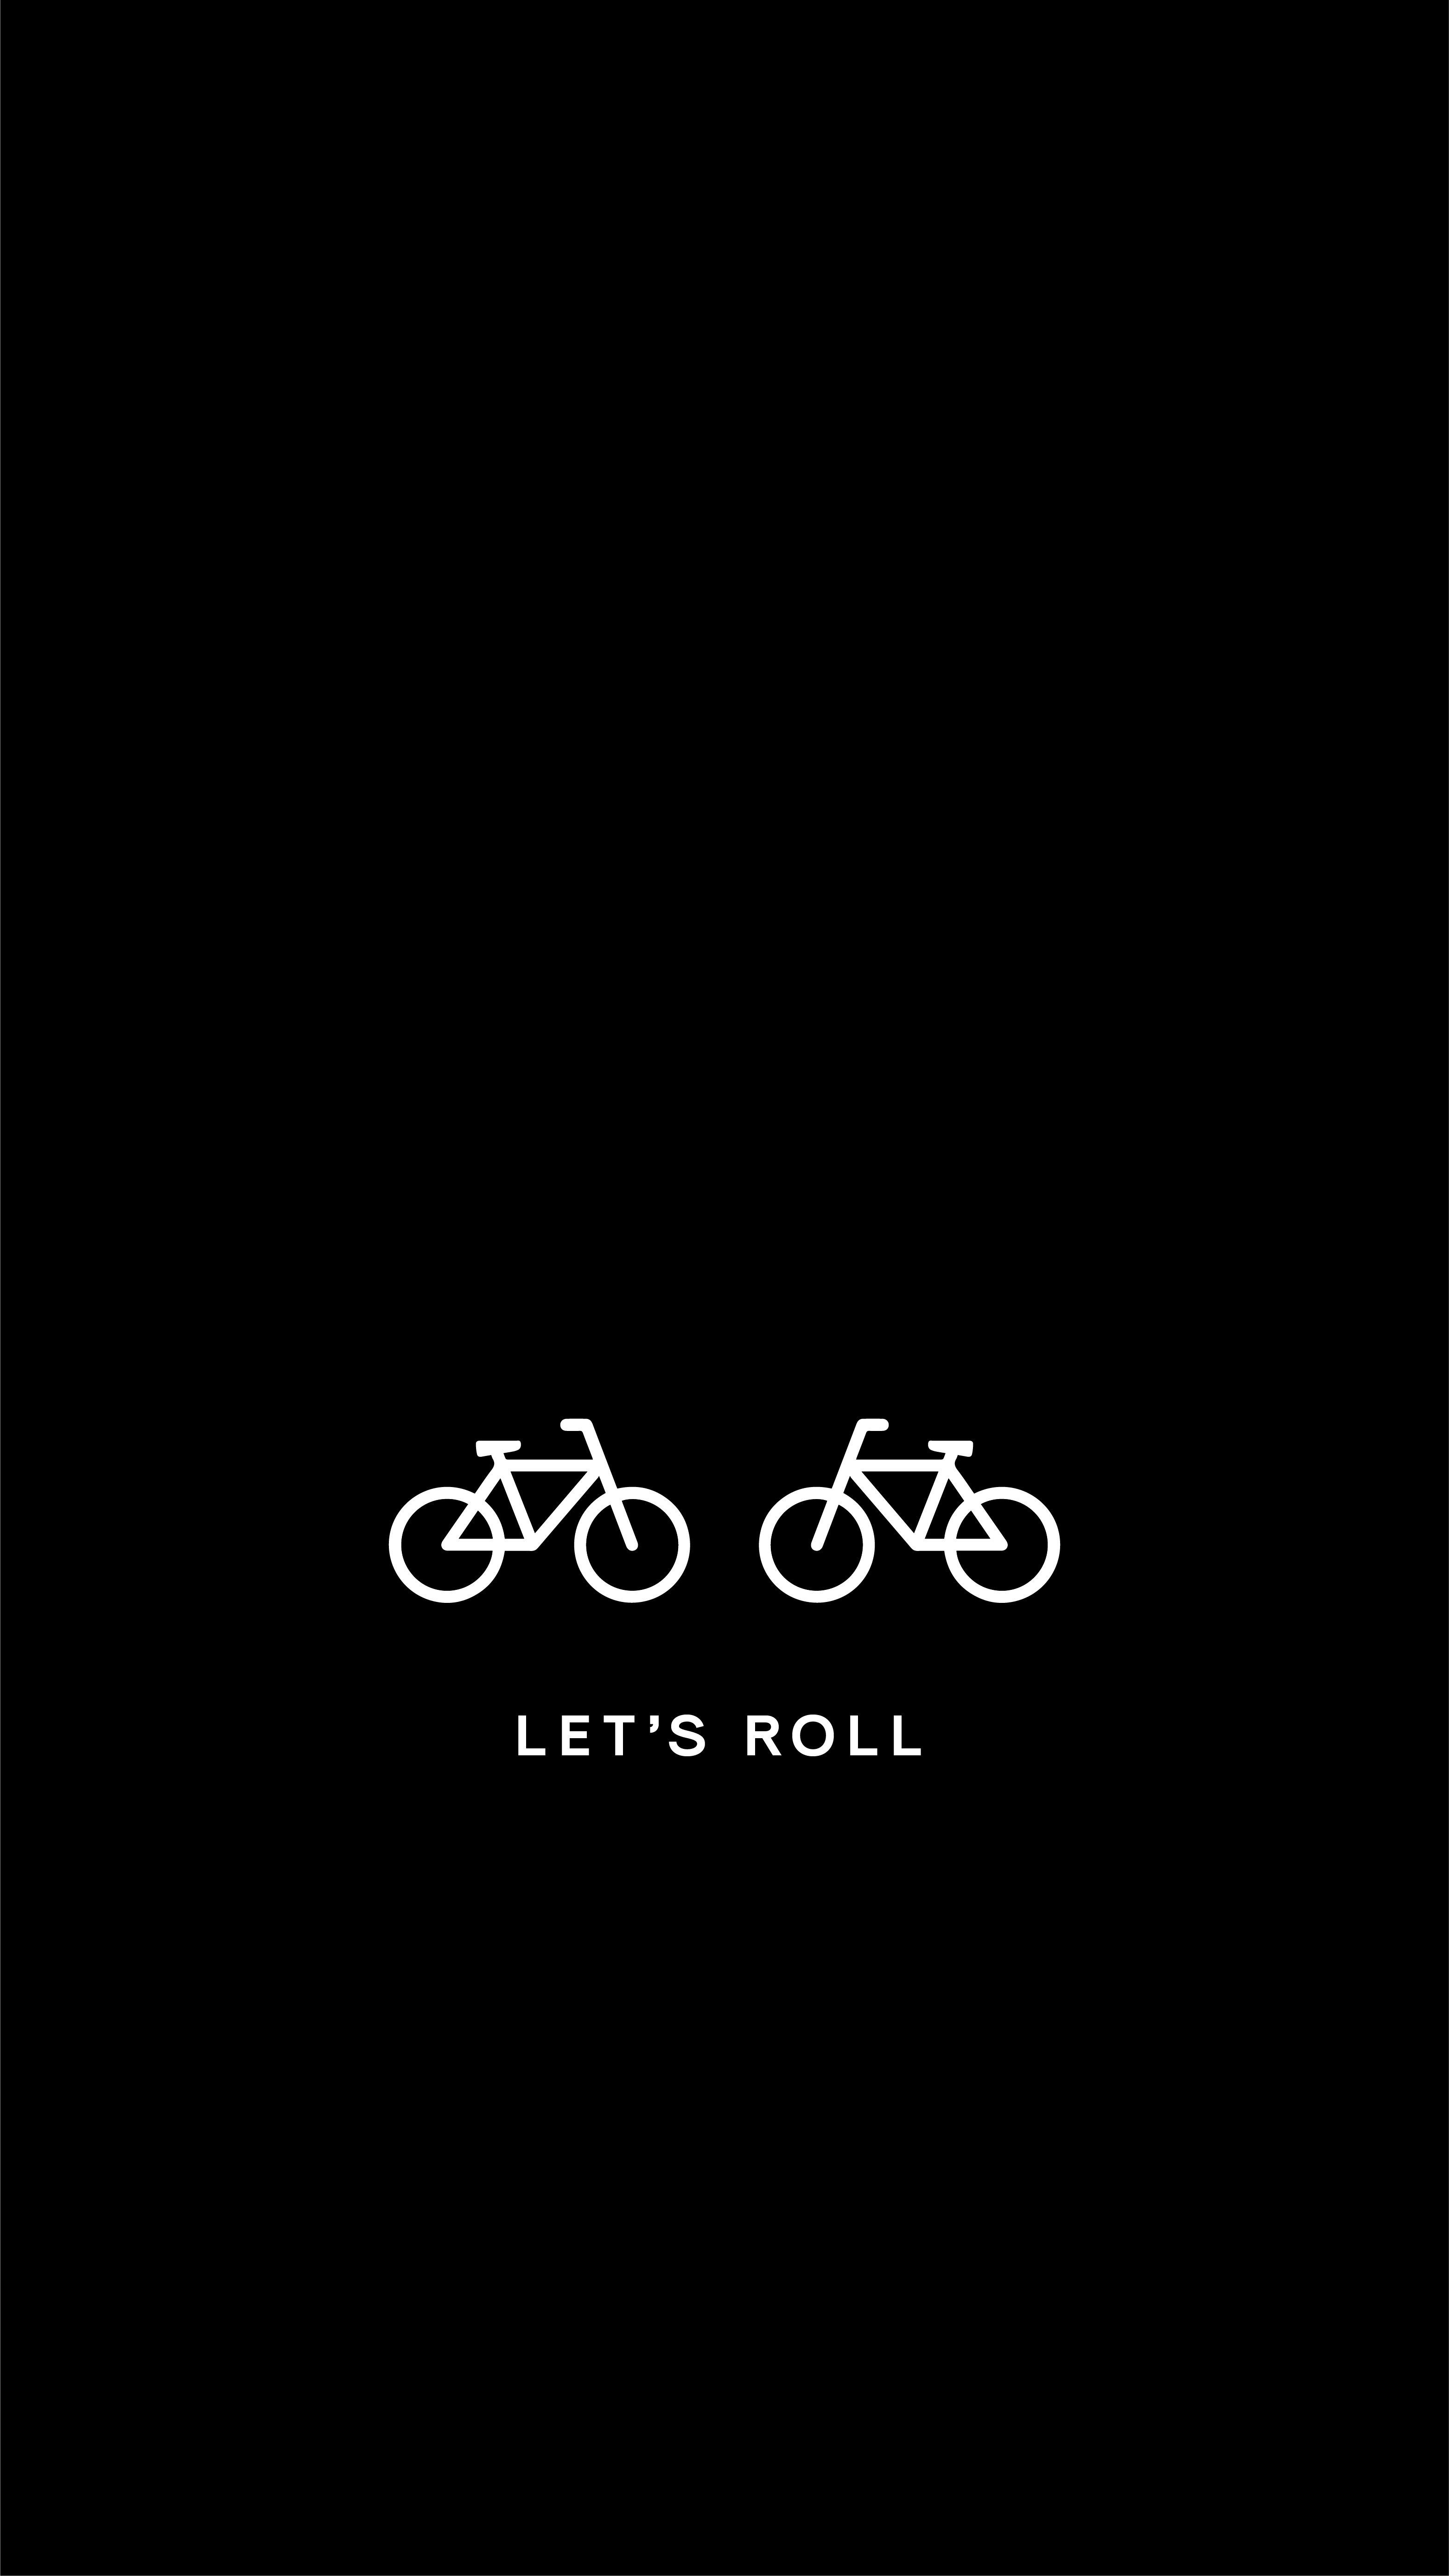 Arvowear Letsroll Bikes Minimal Illustration Graphicdesign